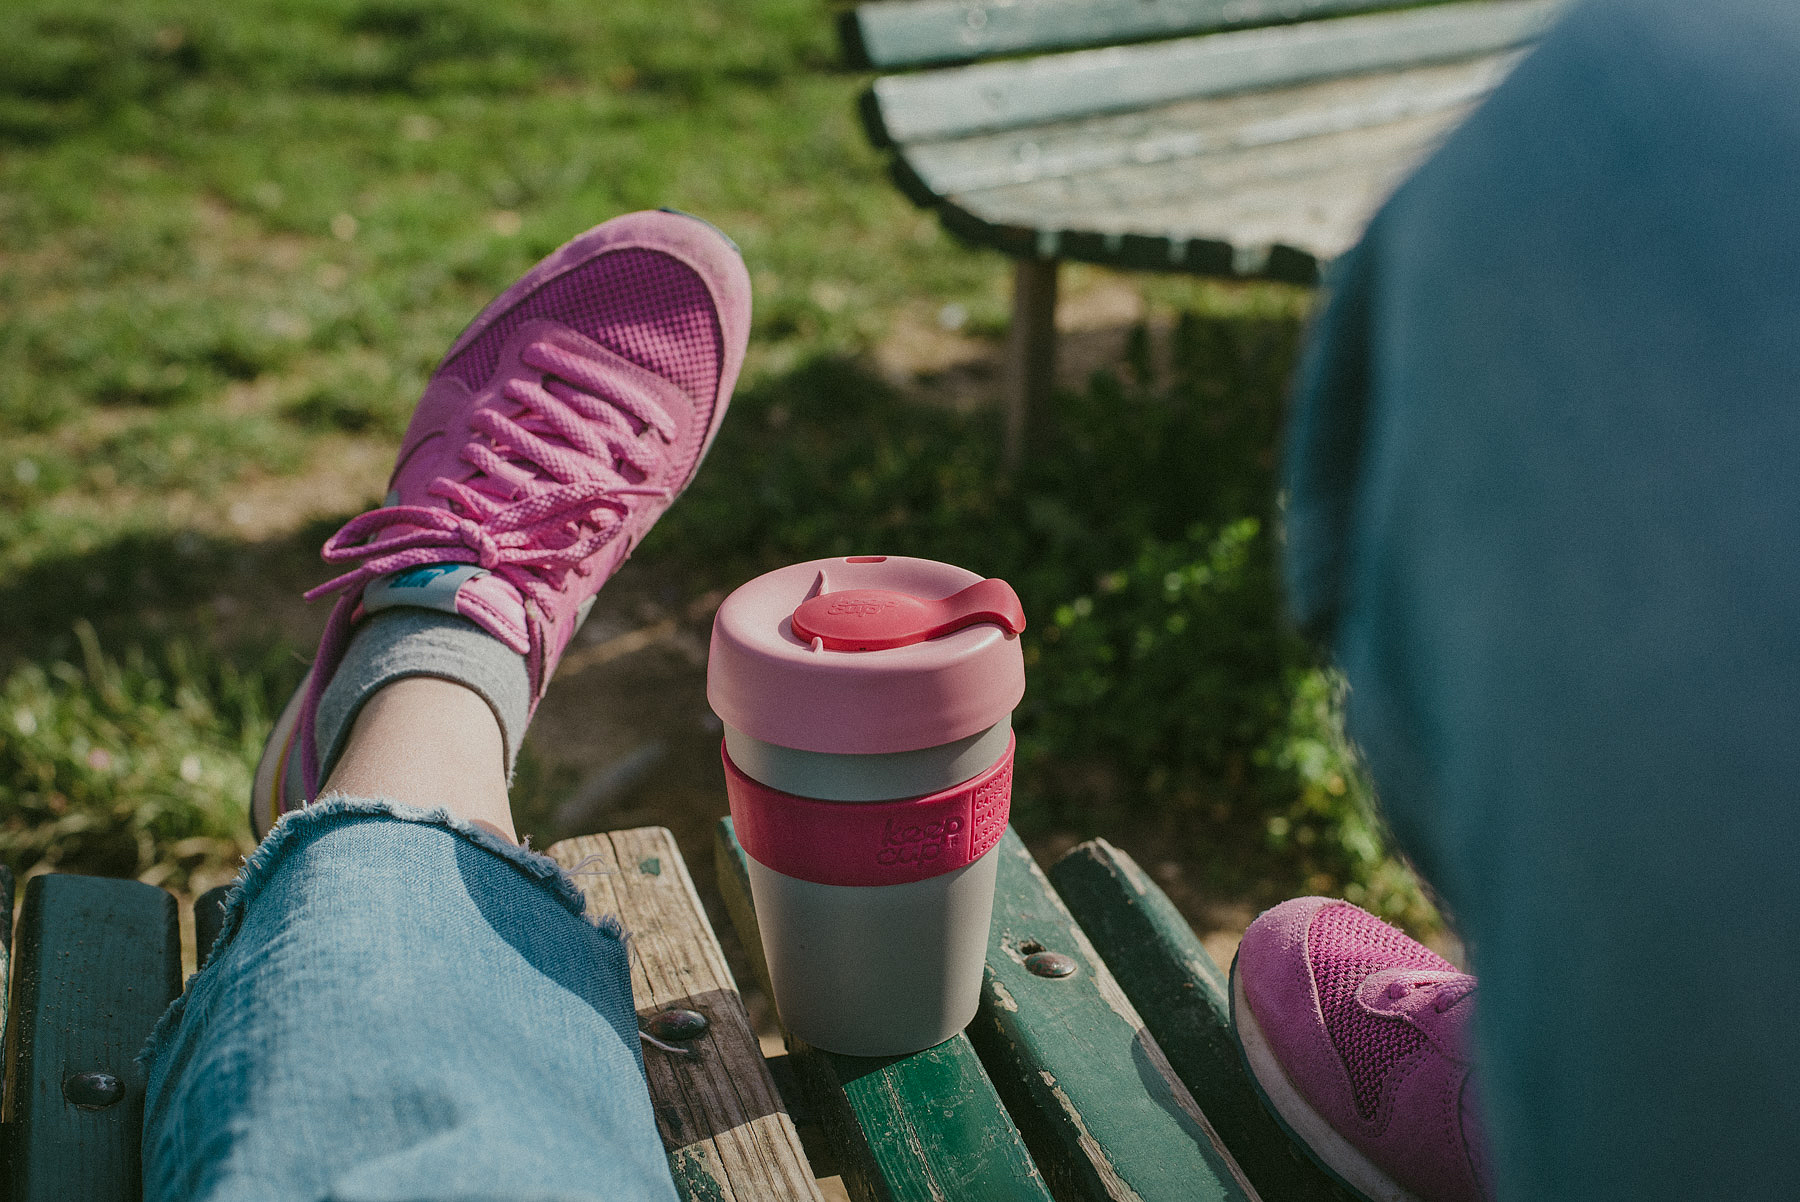 A Keep Cup mug on a park bench while relaxing with some NIke shoes on